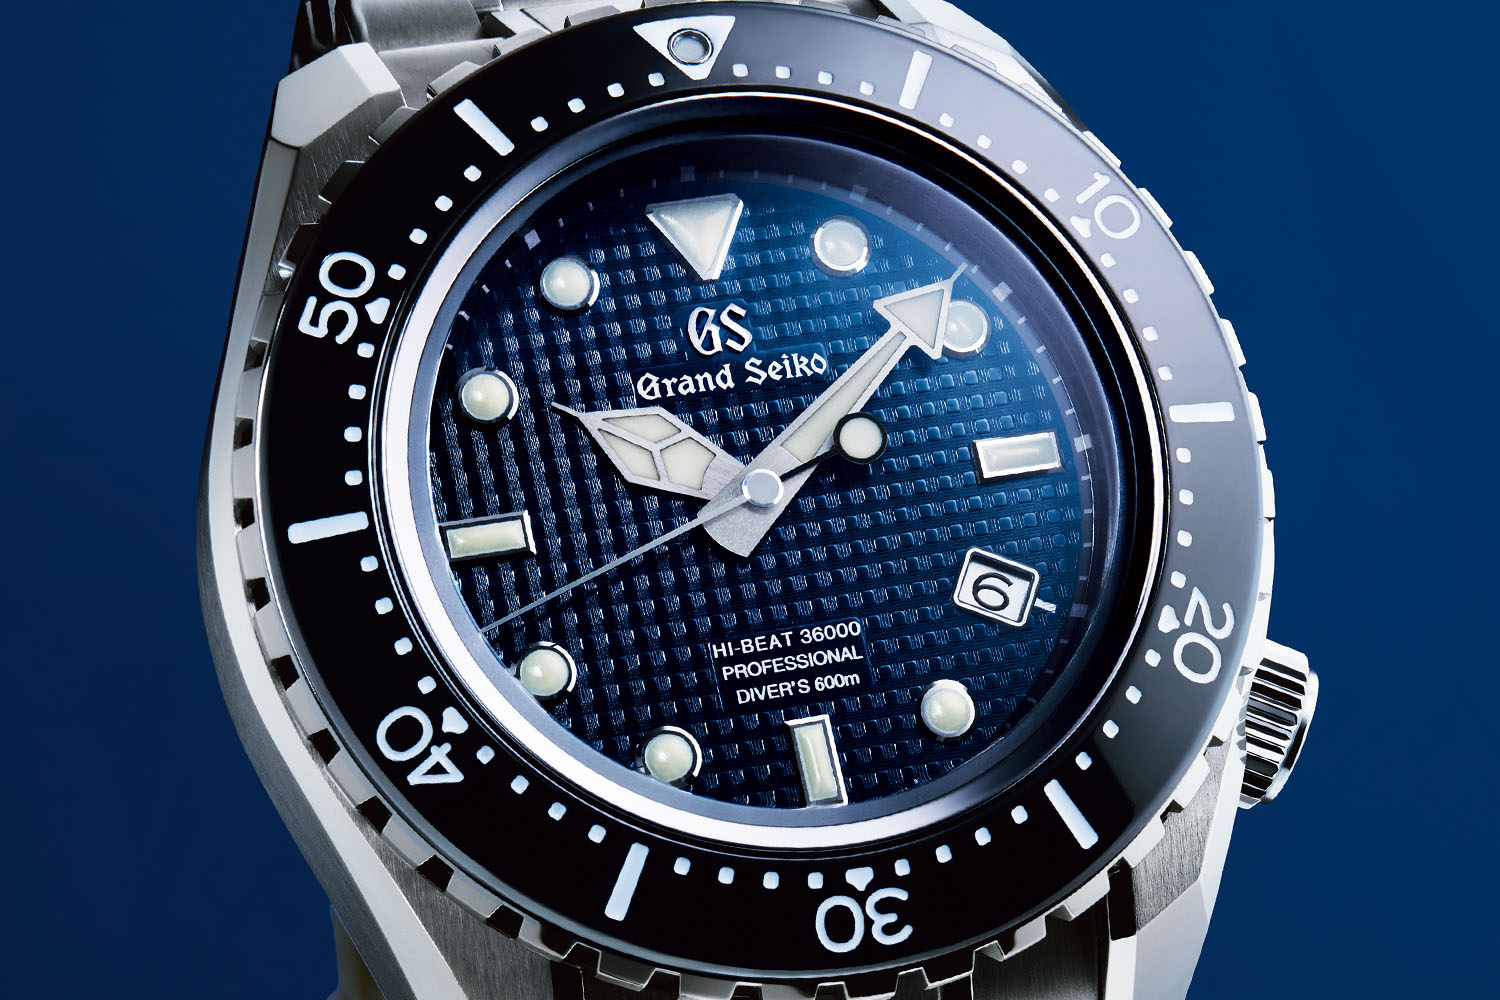 Grand Seiko Hi-Beat 36000 Professional 600m Diver's - SBGH255 - SBGH257